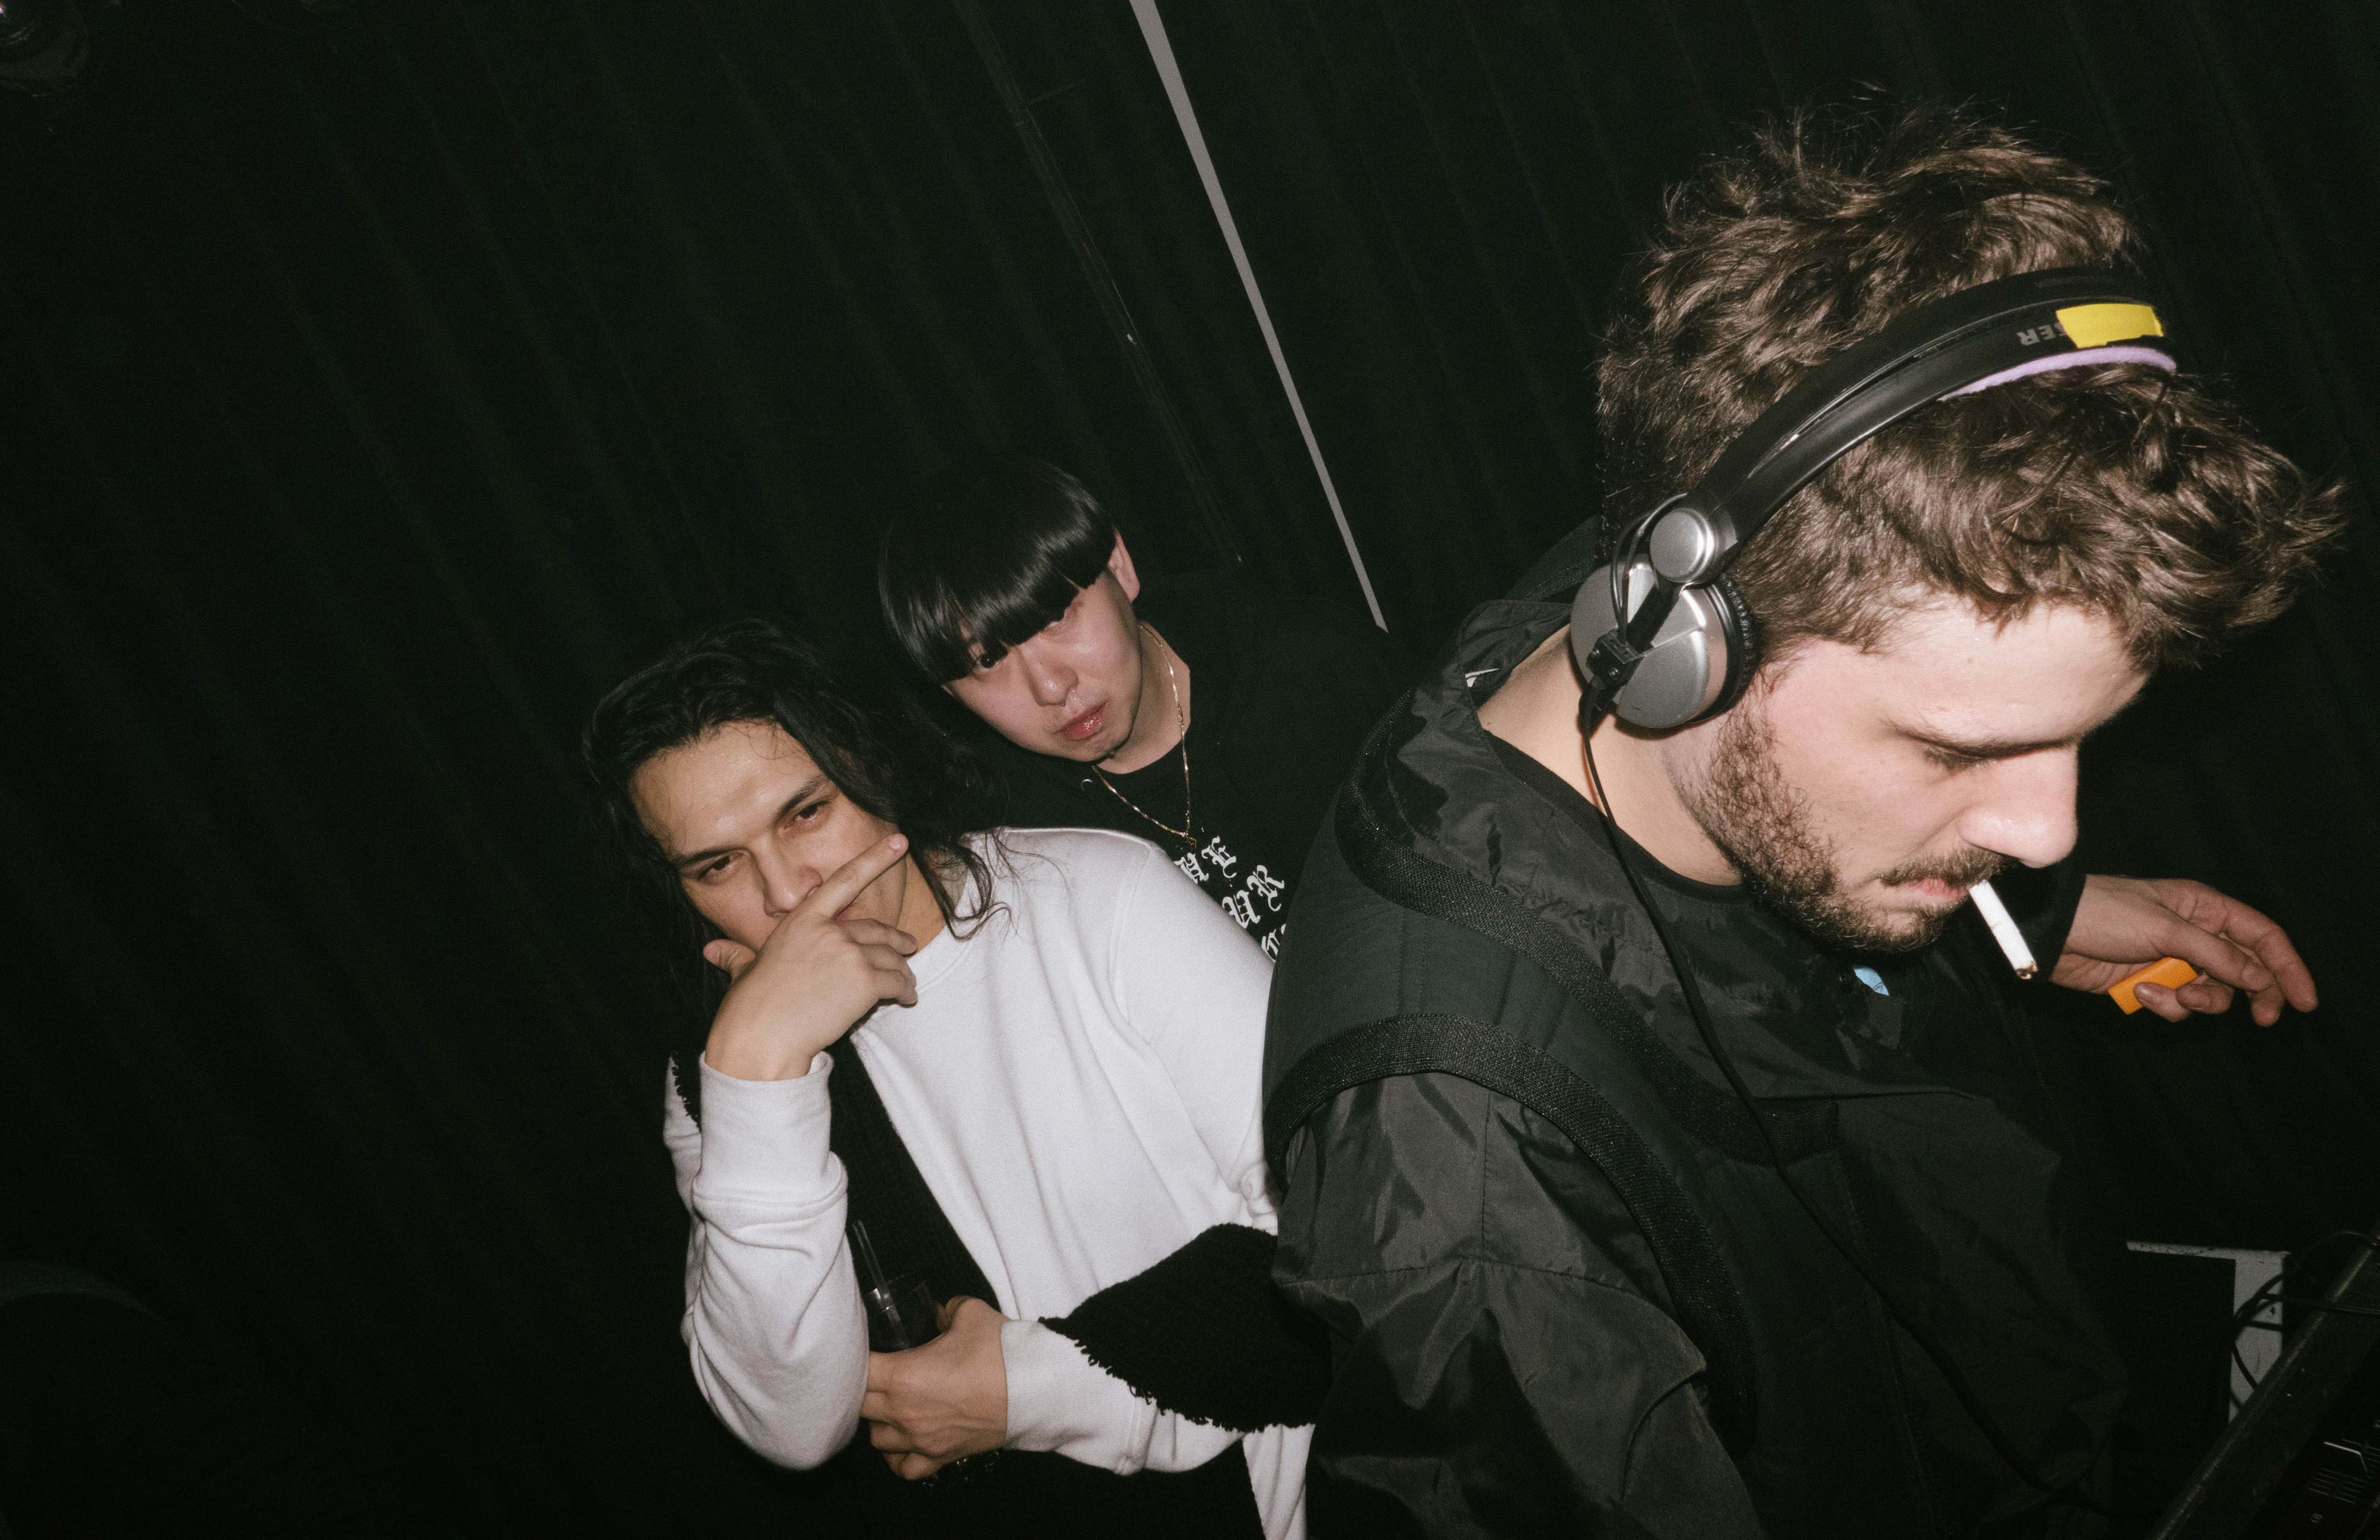 From left to right : Guillermo, Kiri, Sam Tiba at the Phire Wire party